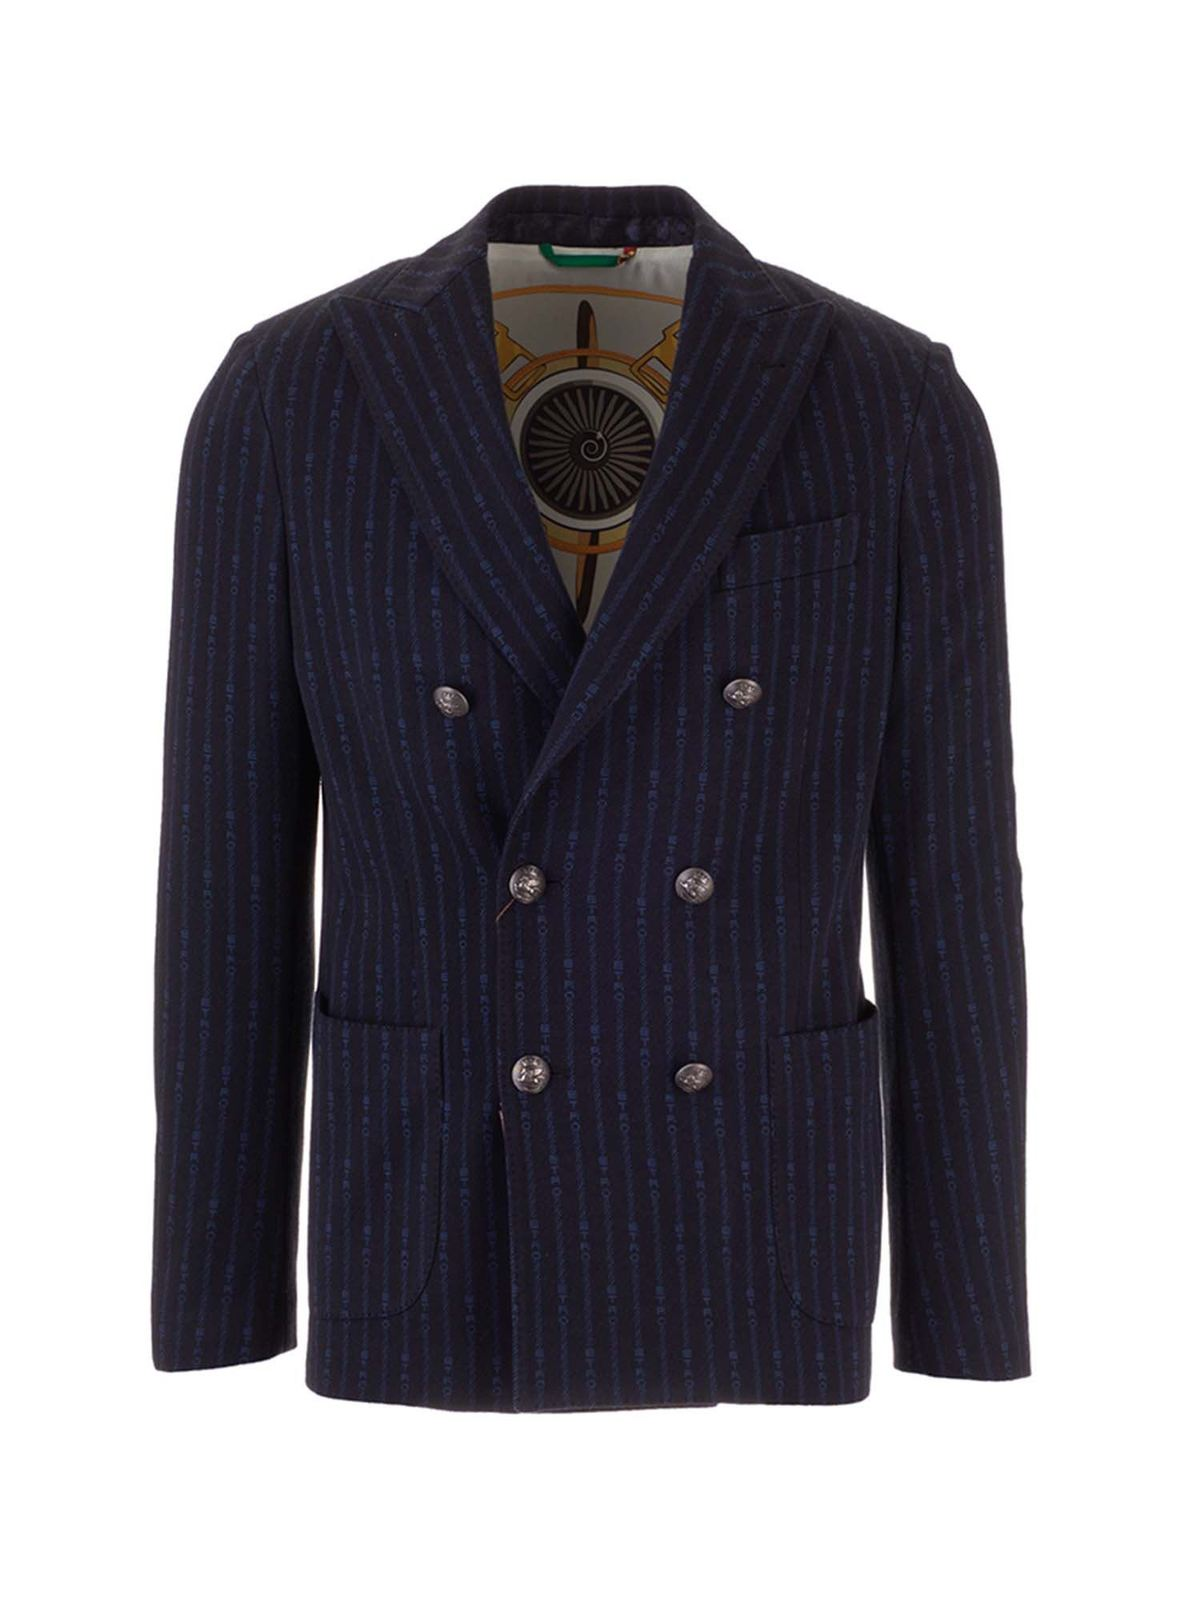 Etro DOUBLE-BREASTED JACKET IN BLUE